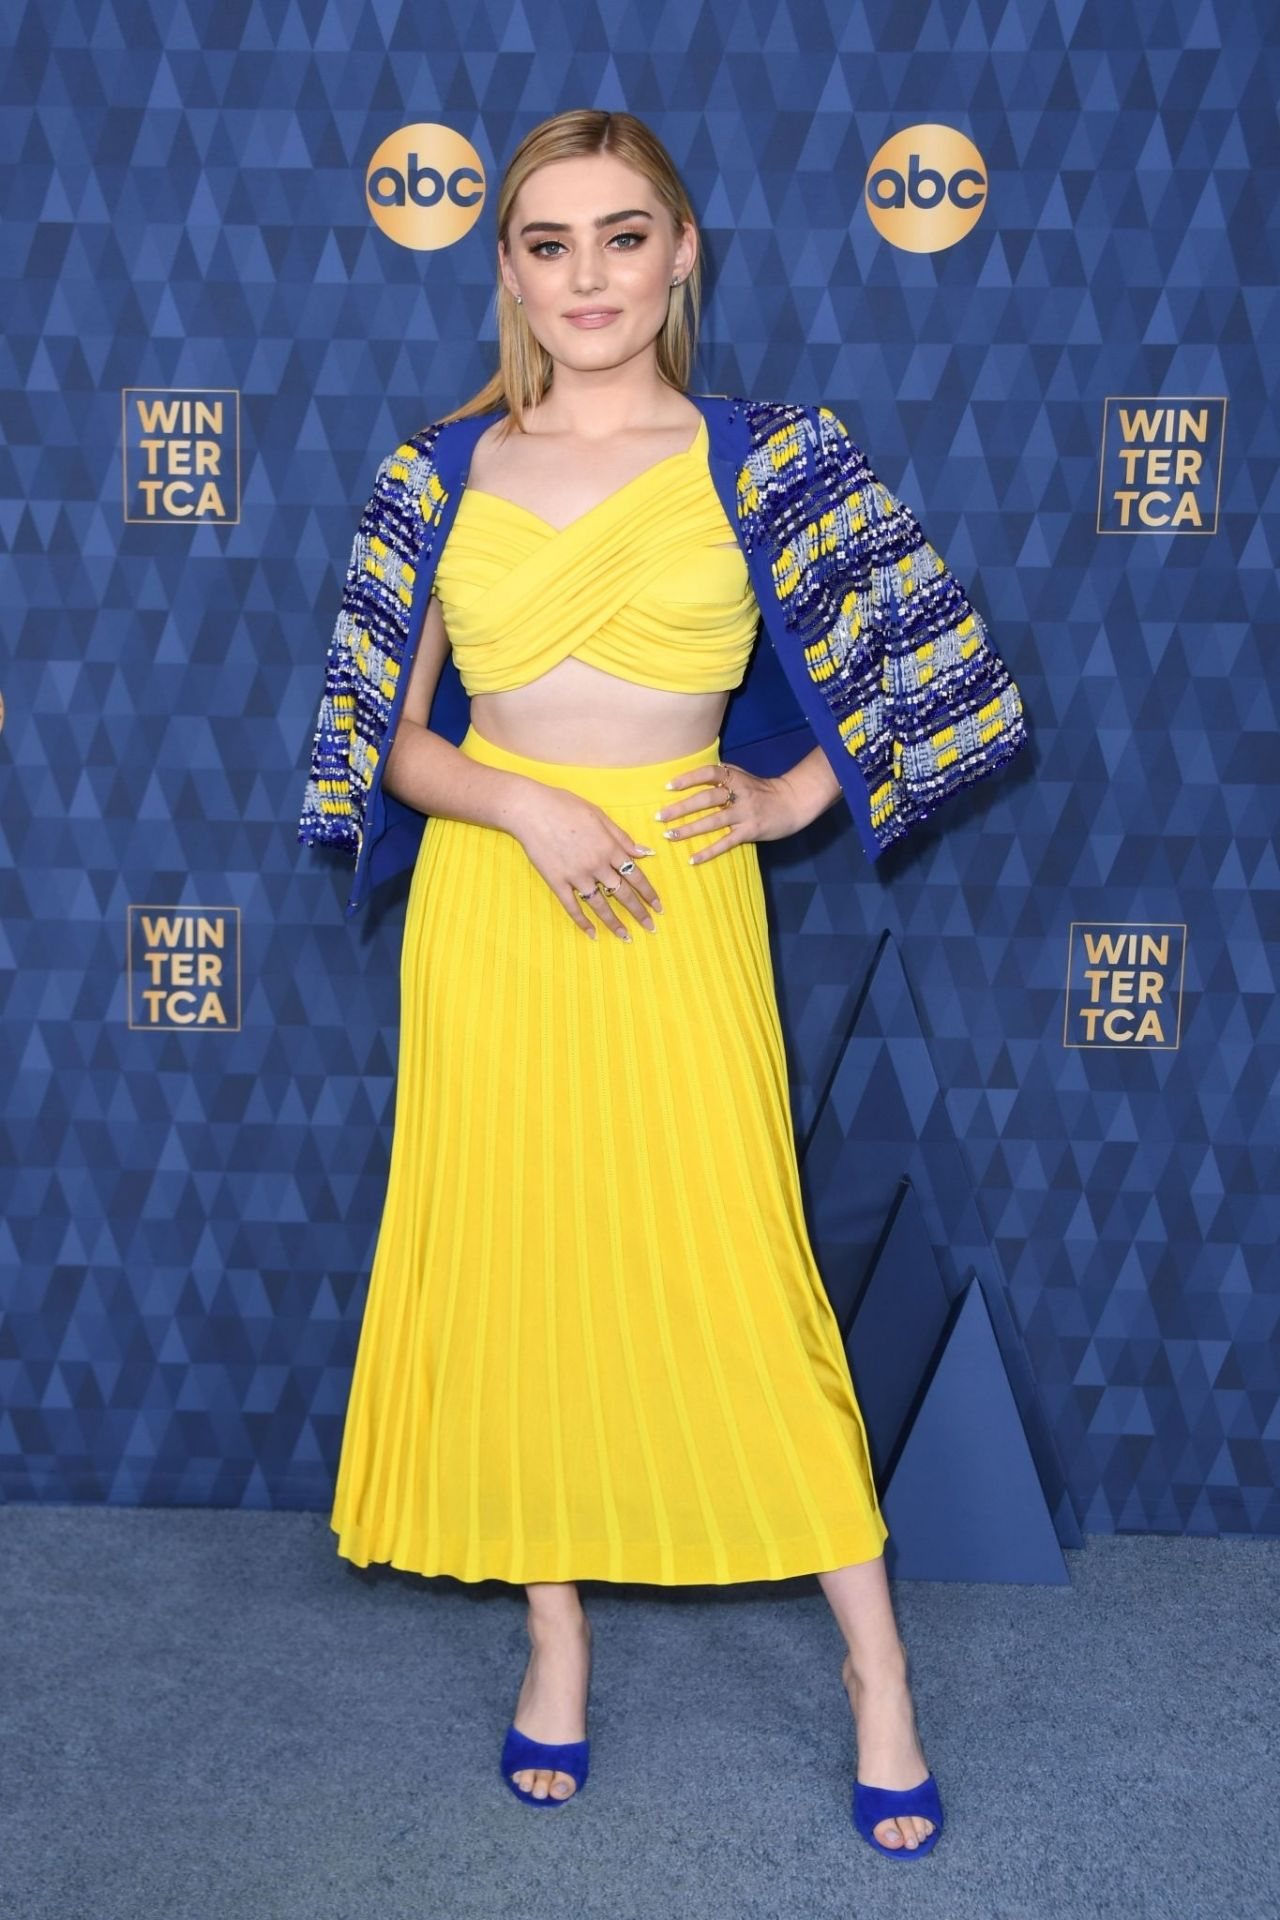 meg-donnelly-attends-abc-televisions-winter-press-tour-2020-in-pasadena